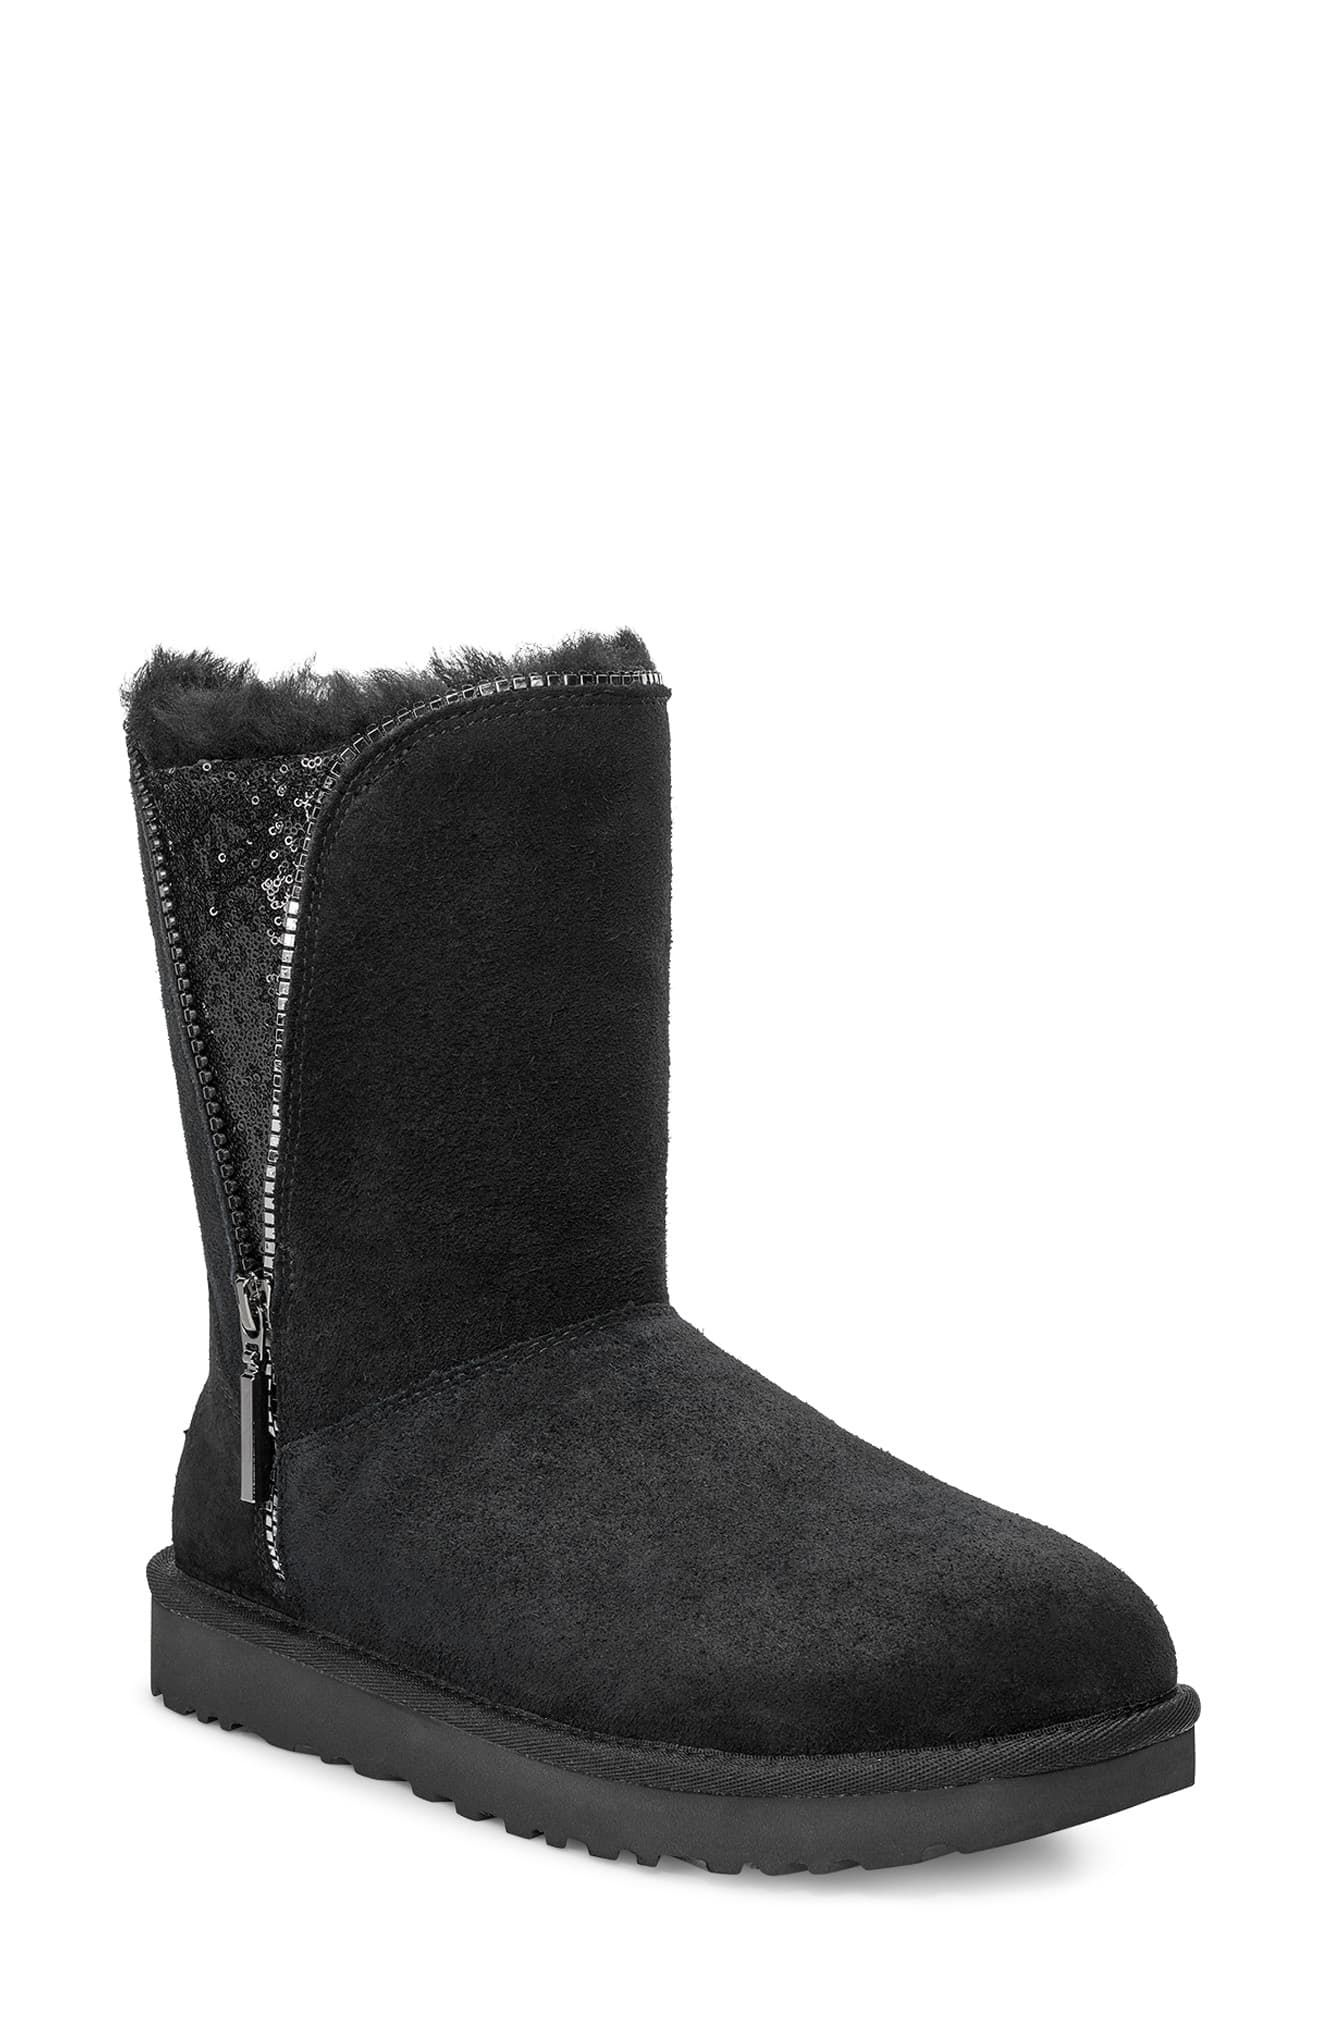 UGG Classic Sequin Ankle Height Flat Lined Boot In Black